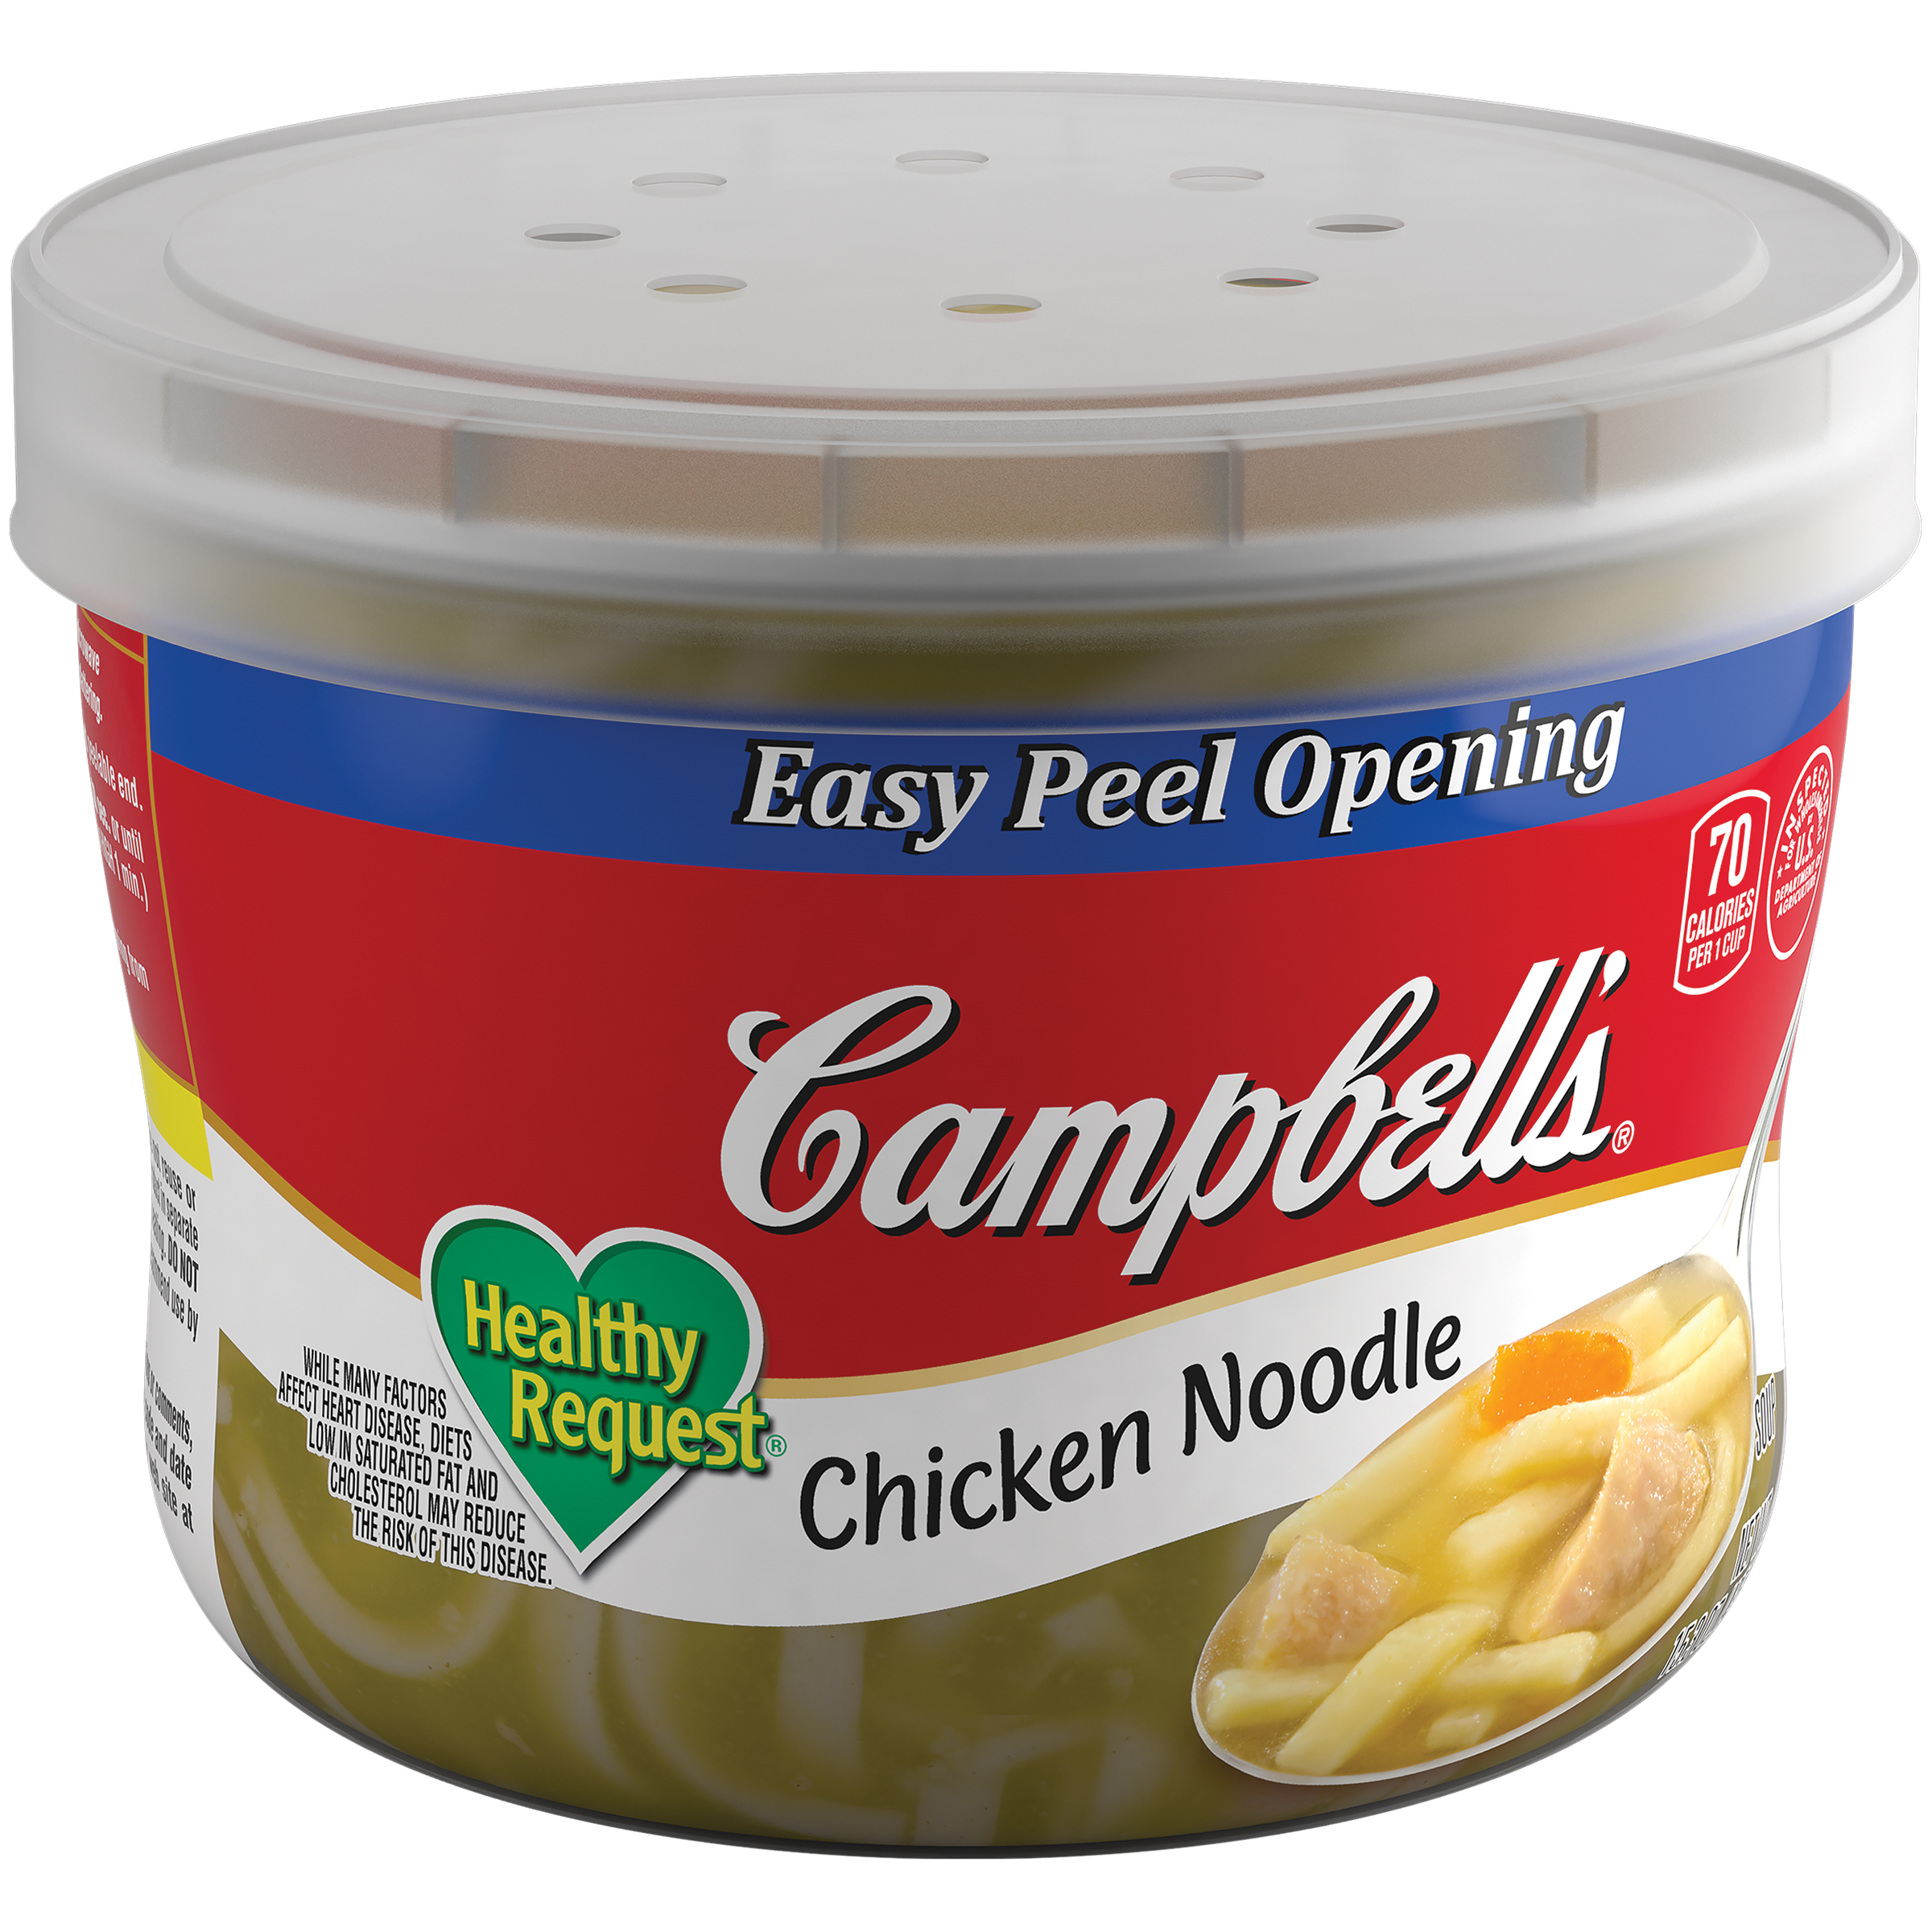 Campbell's Healthy Request Chicken Noodle Soup 15.3oz Bowl